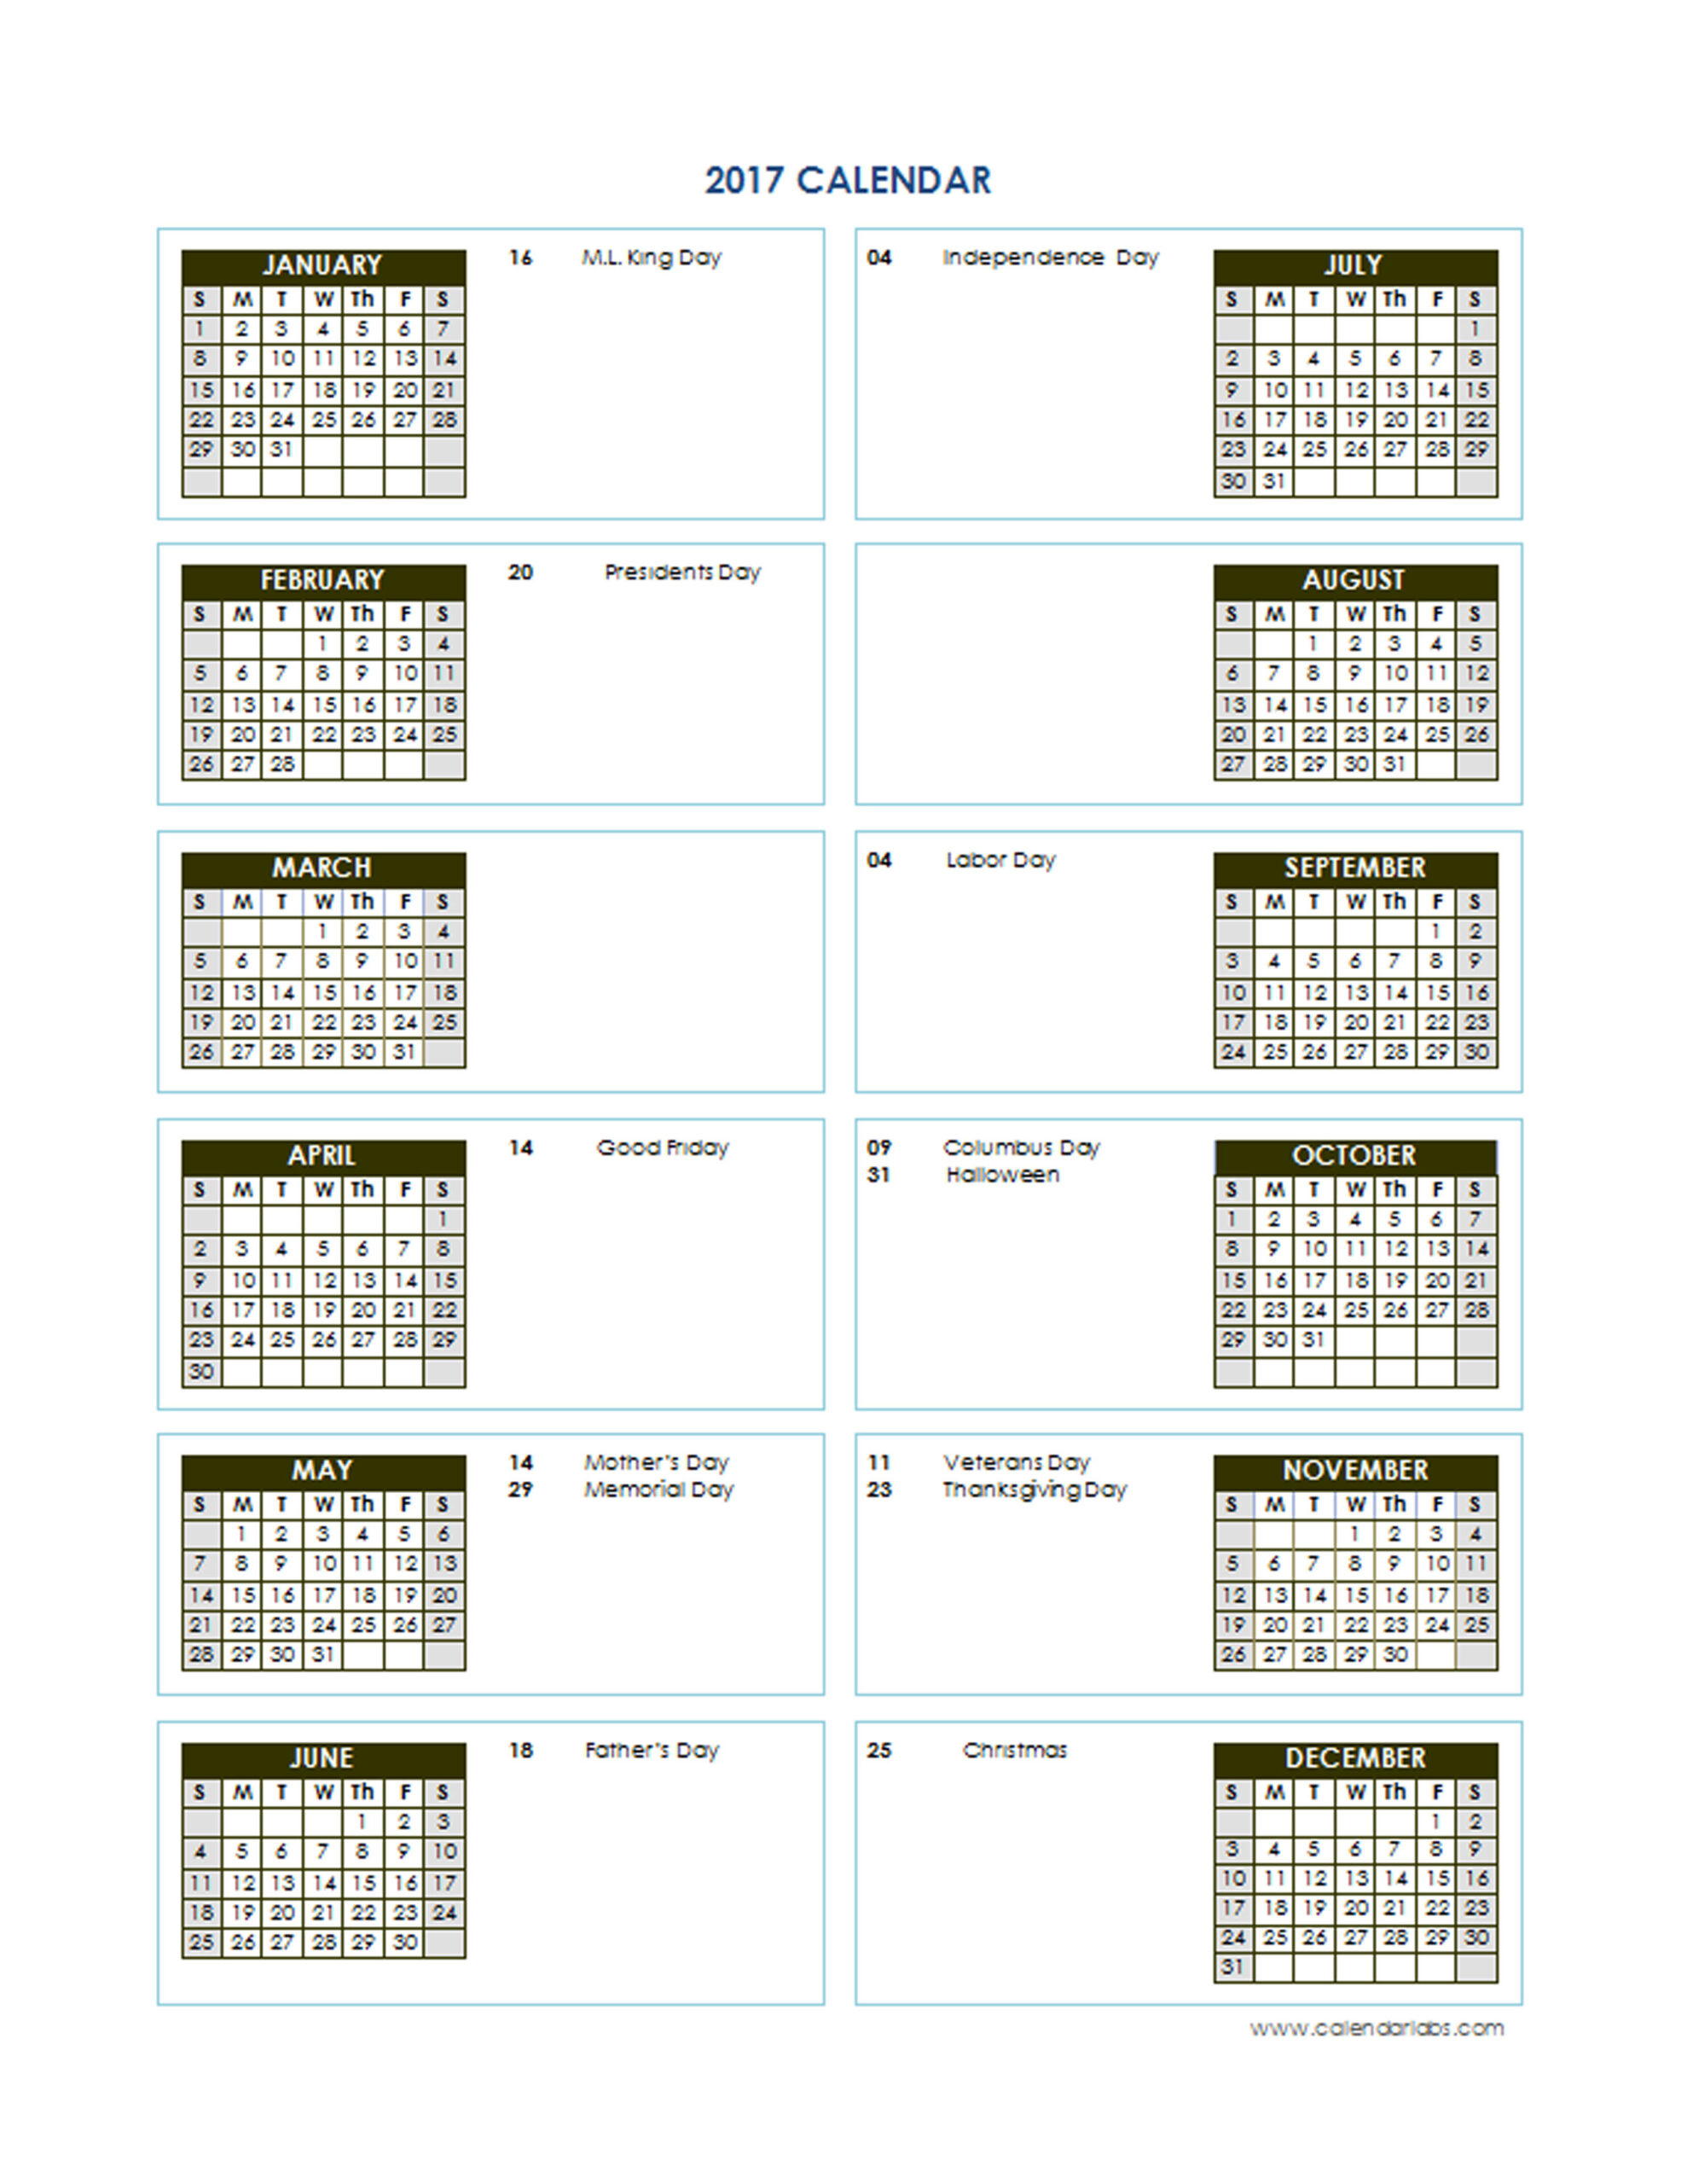 2017 Yearly Calendar Template Vertical 02 - Free Printable